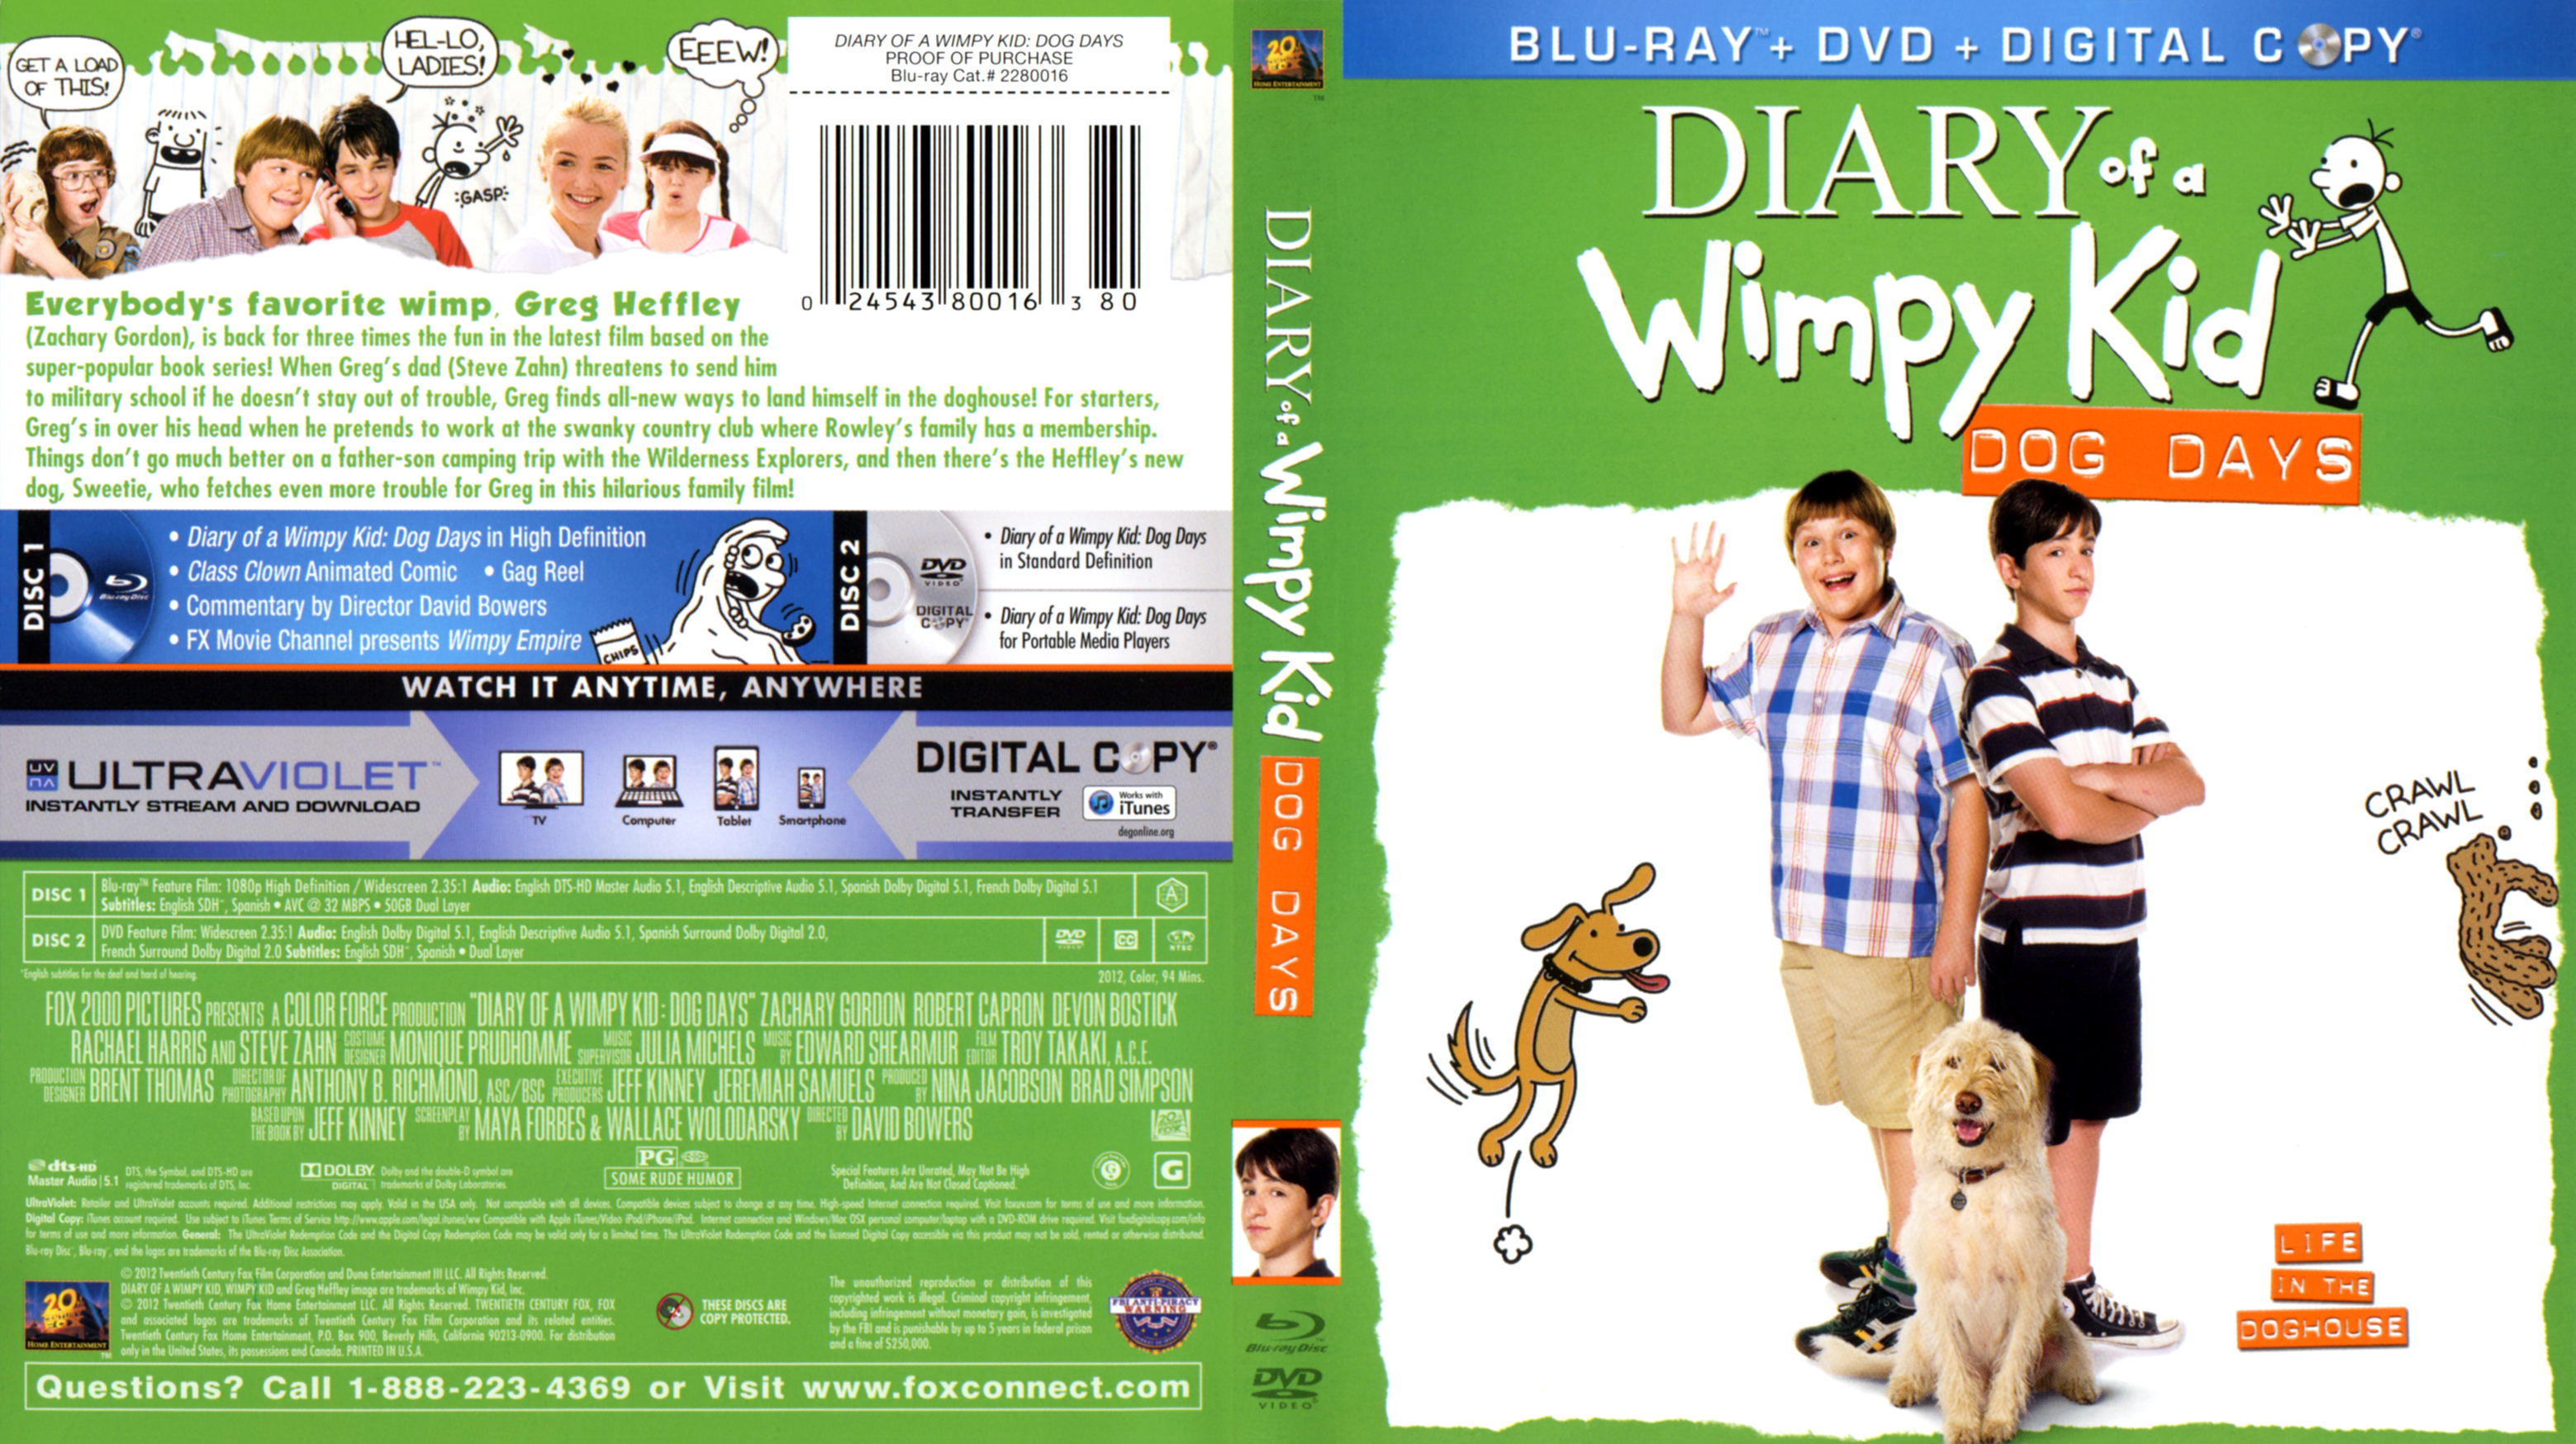 Diary Of A Wimpy Kid Dog Days Blu Ray Blu Ray Covers Cover Century Over 500 000 Album Art Covers For Free